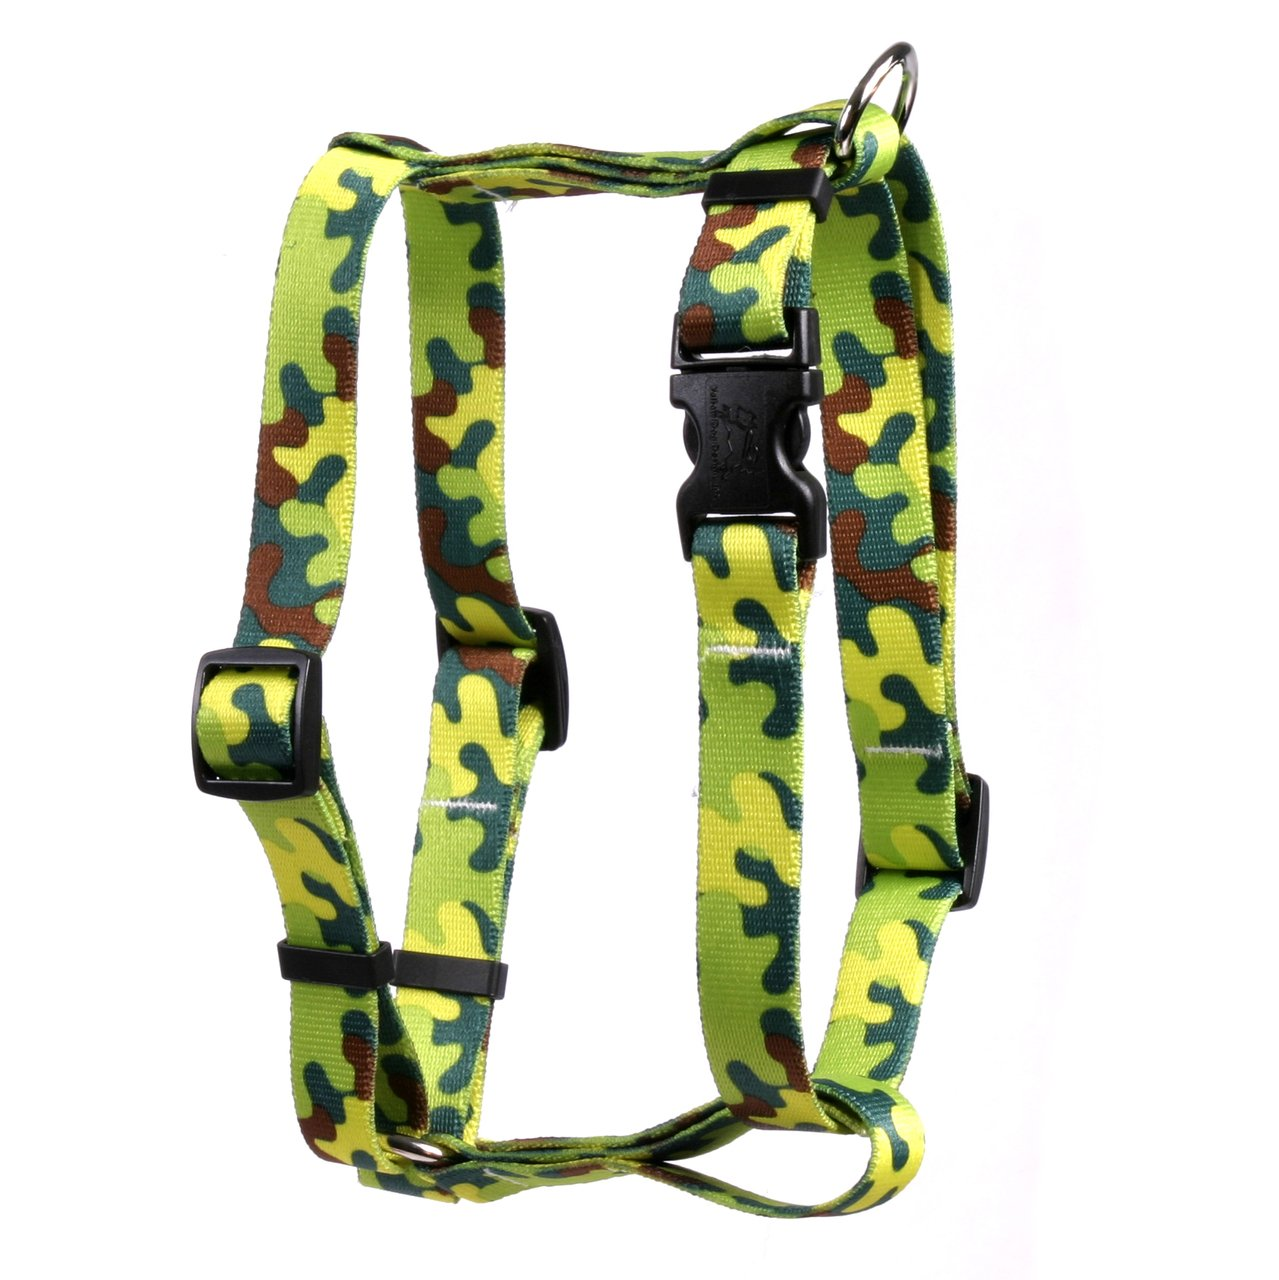 Yellow Dog Design Neon Camo Roman Style H Dog Harness, Large-1'' Wide and fits Chest of 20 to 28'' by Yellow Dog Design